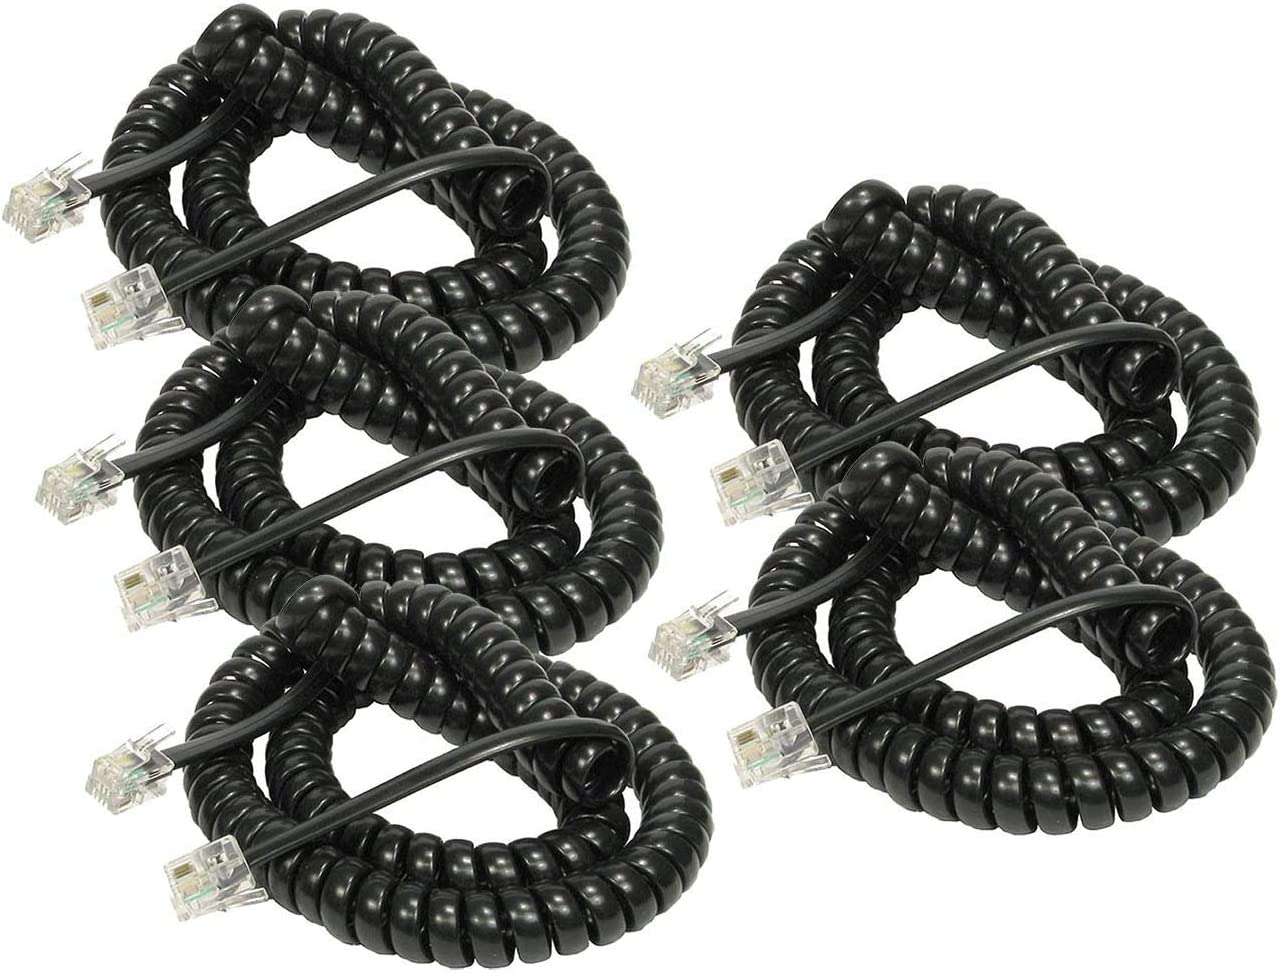 iMBAPrice (5 Pack) Black Telephone Headset Cable - (3 to 12 Feet) Heavy Duty Coiled Telephone Handset Cord